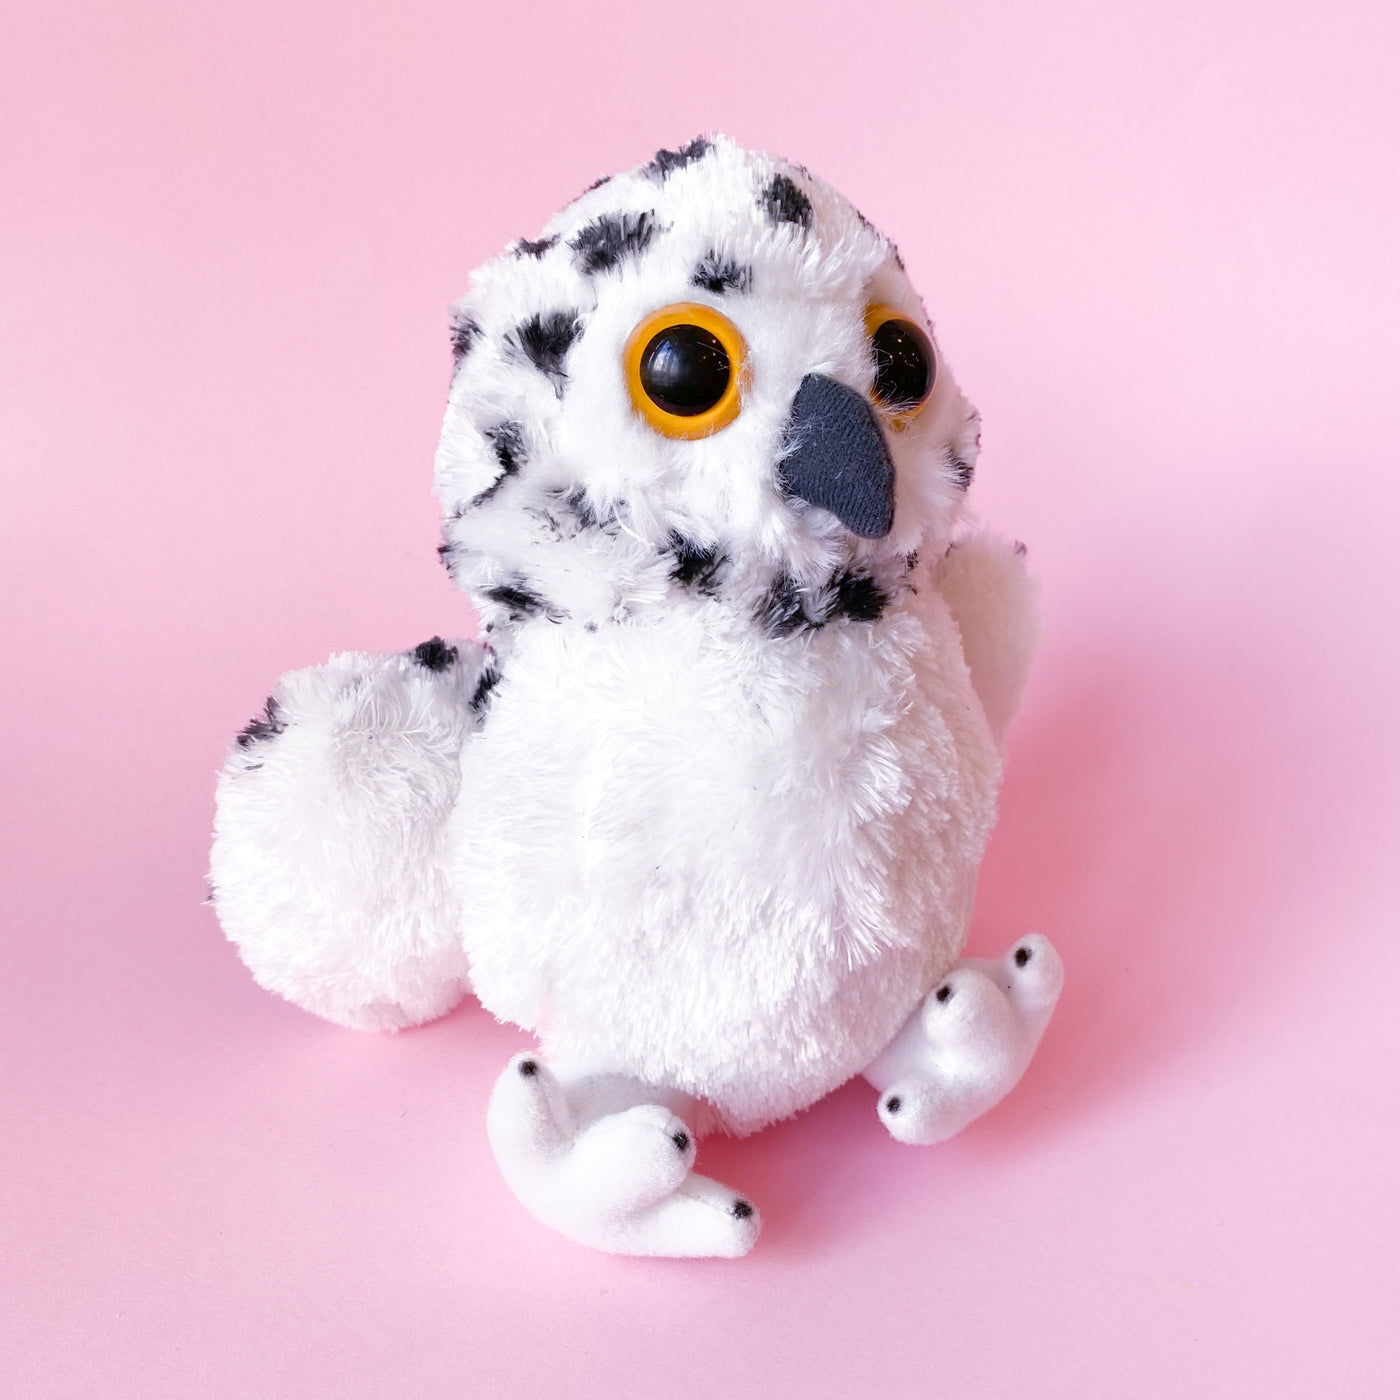 Baby Owl Stuffed Animal